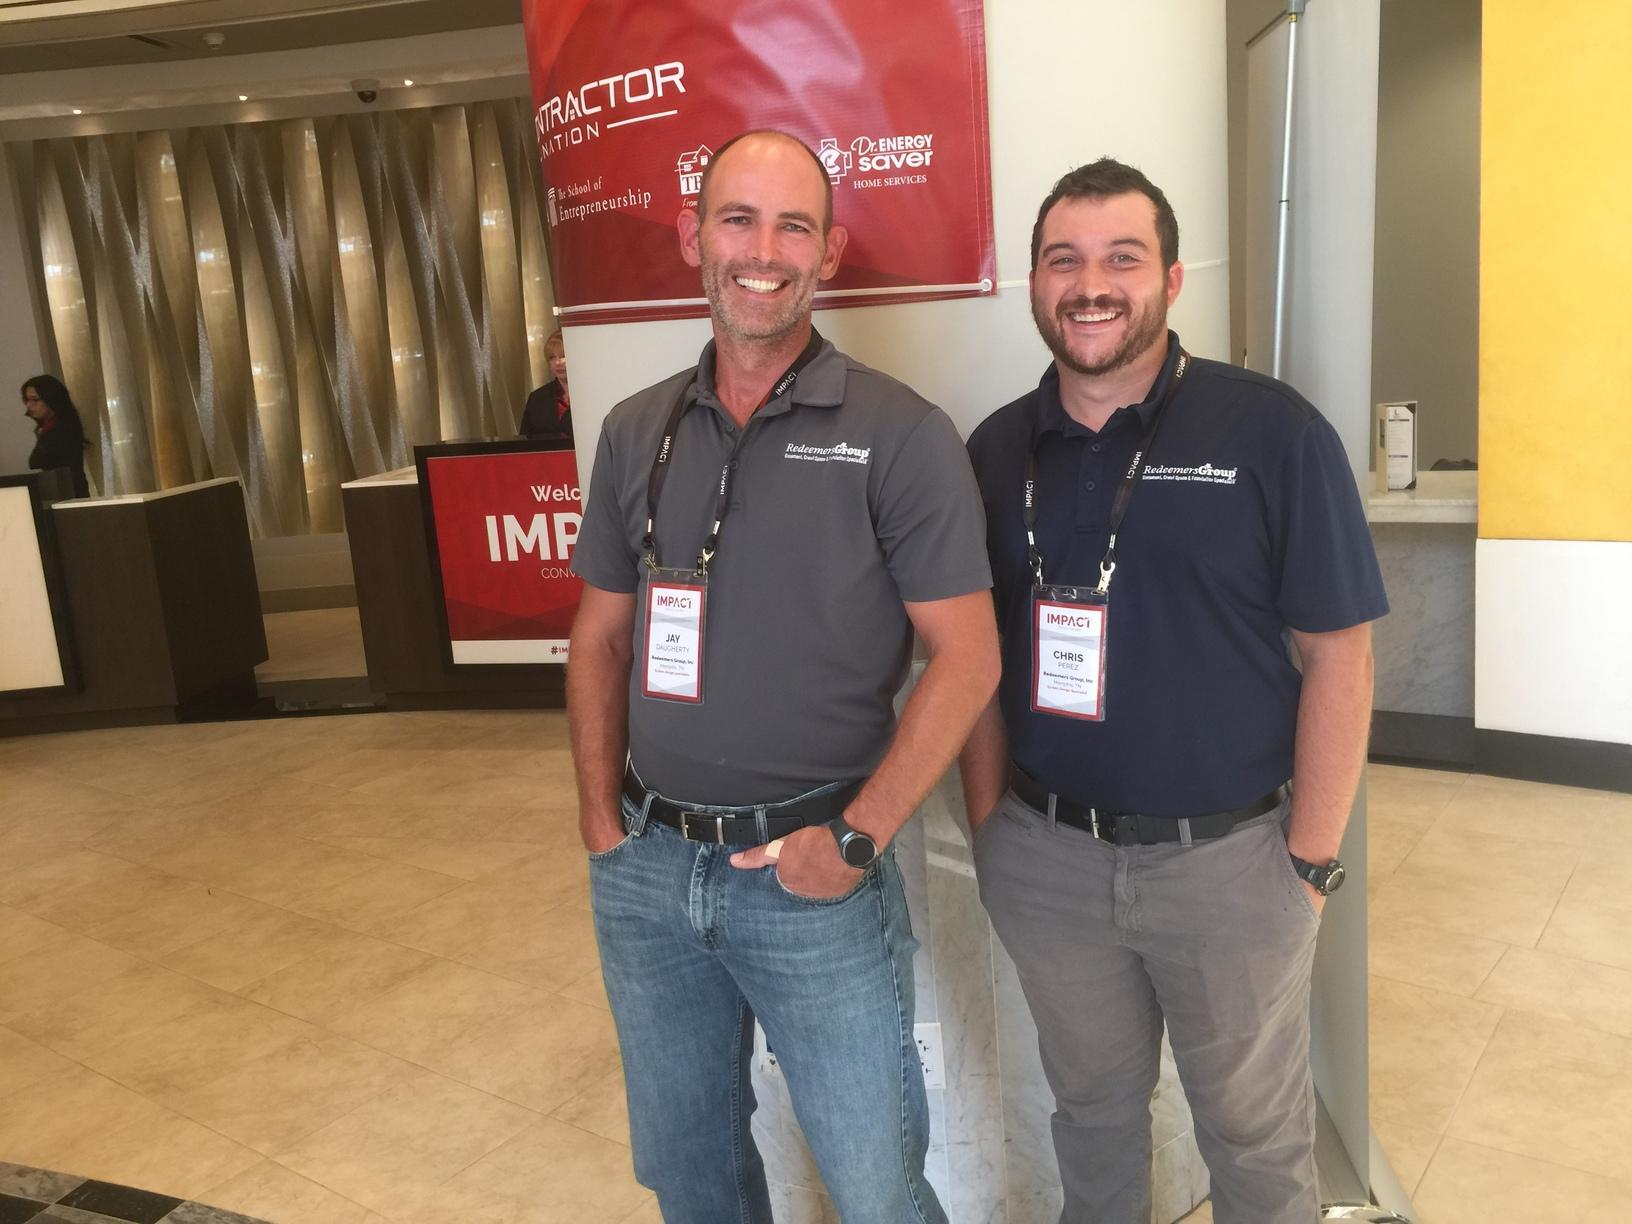 2 team members take in all that is going on around them at Impact Convention 2017